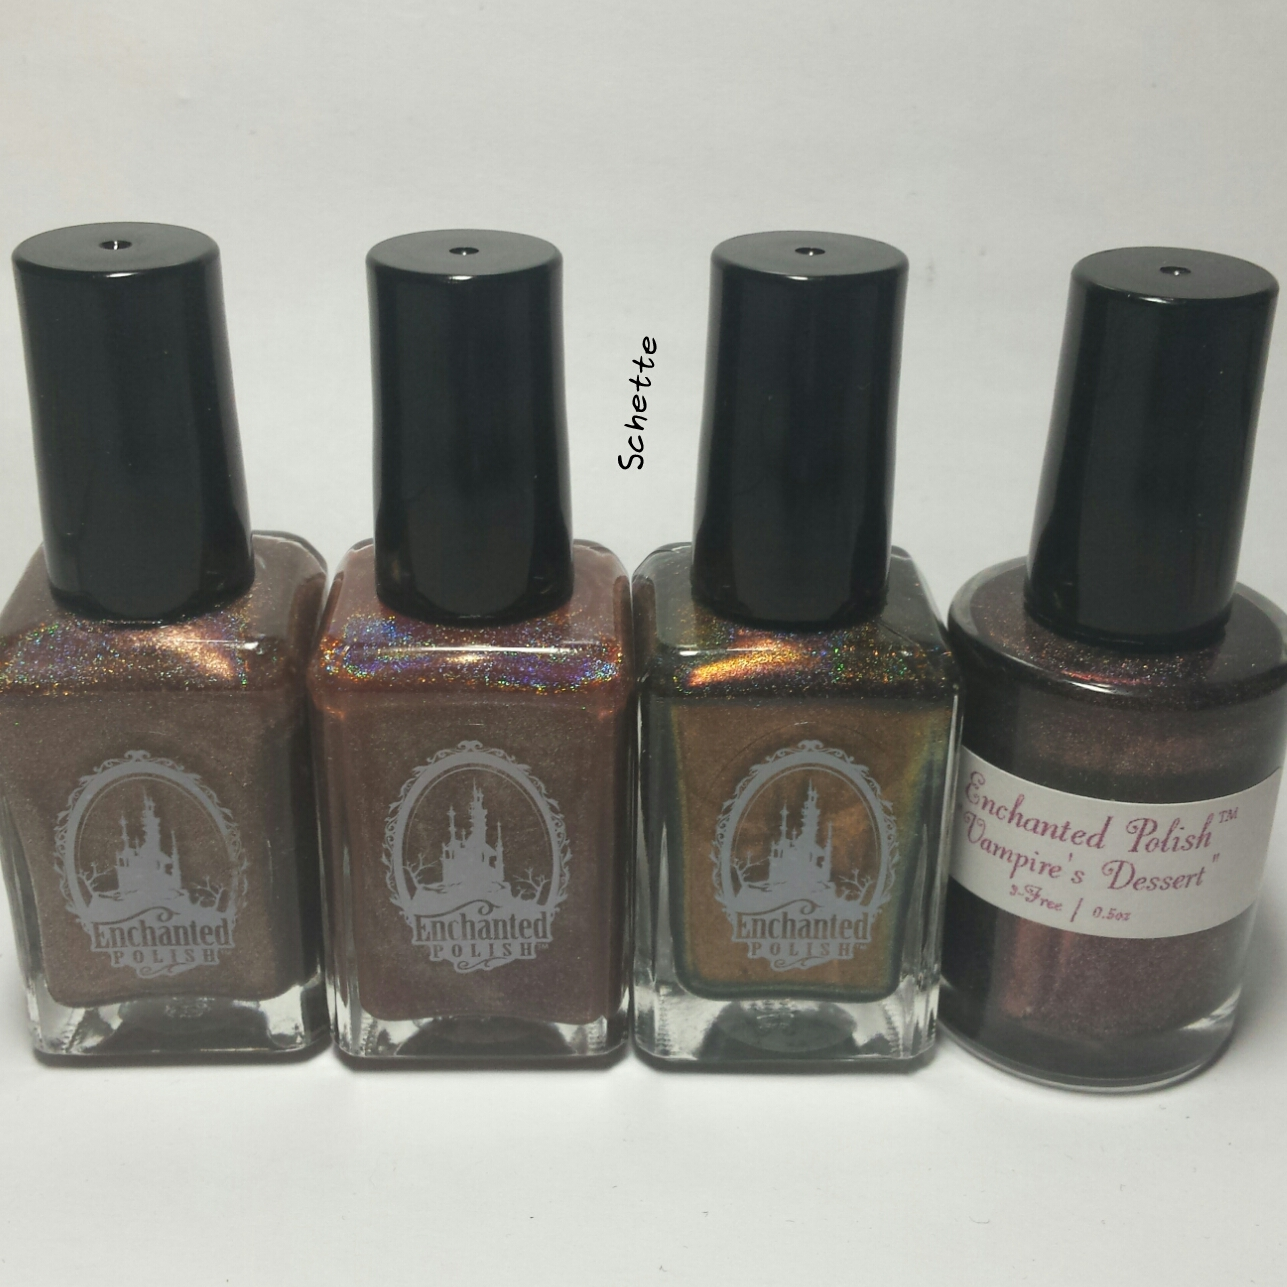 Les vernis Enchanted Polish Hot Chocolate, Hot Chocolate for Unicorn, Vampires suck and Vampire's dessert